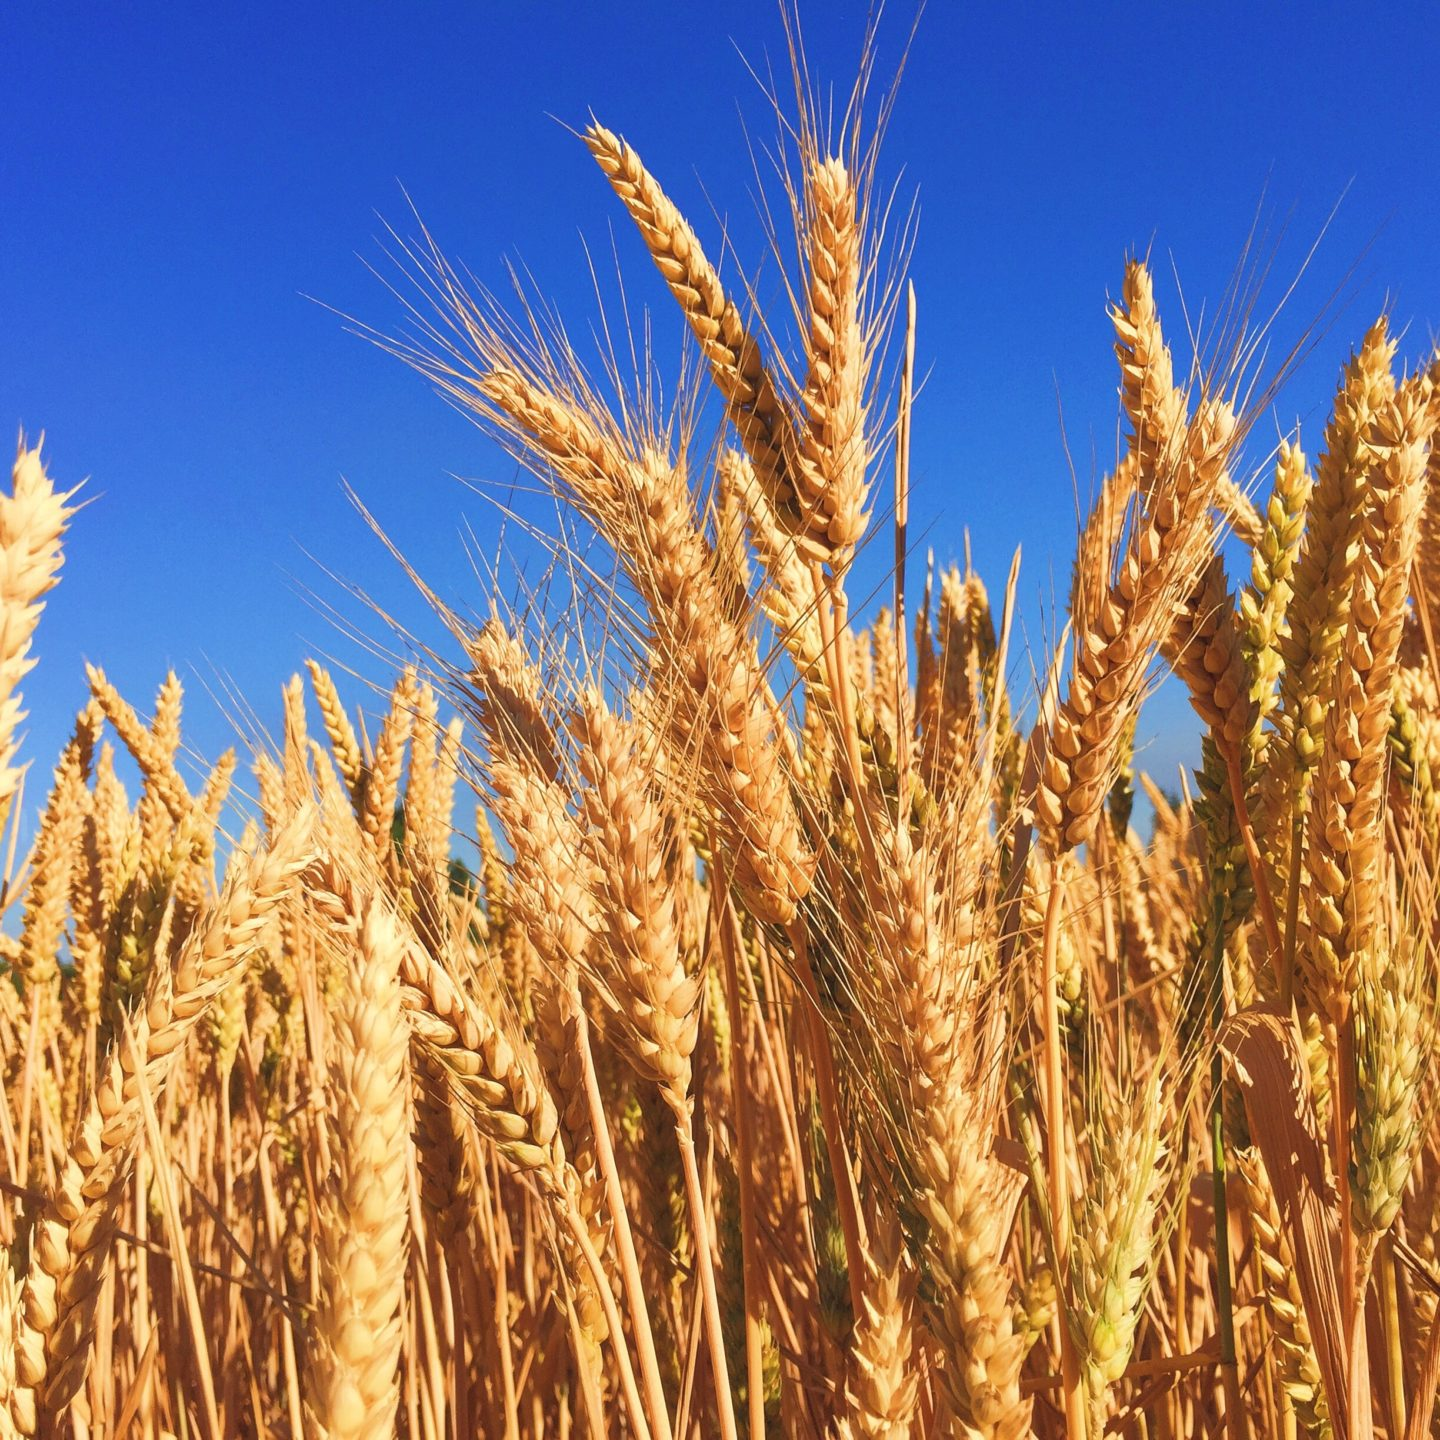 Analysis of bread wheat pangenome reveals significant variation in the number of genes among different varieties